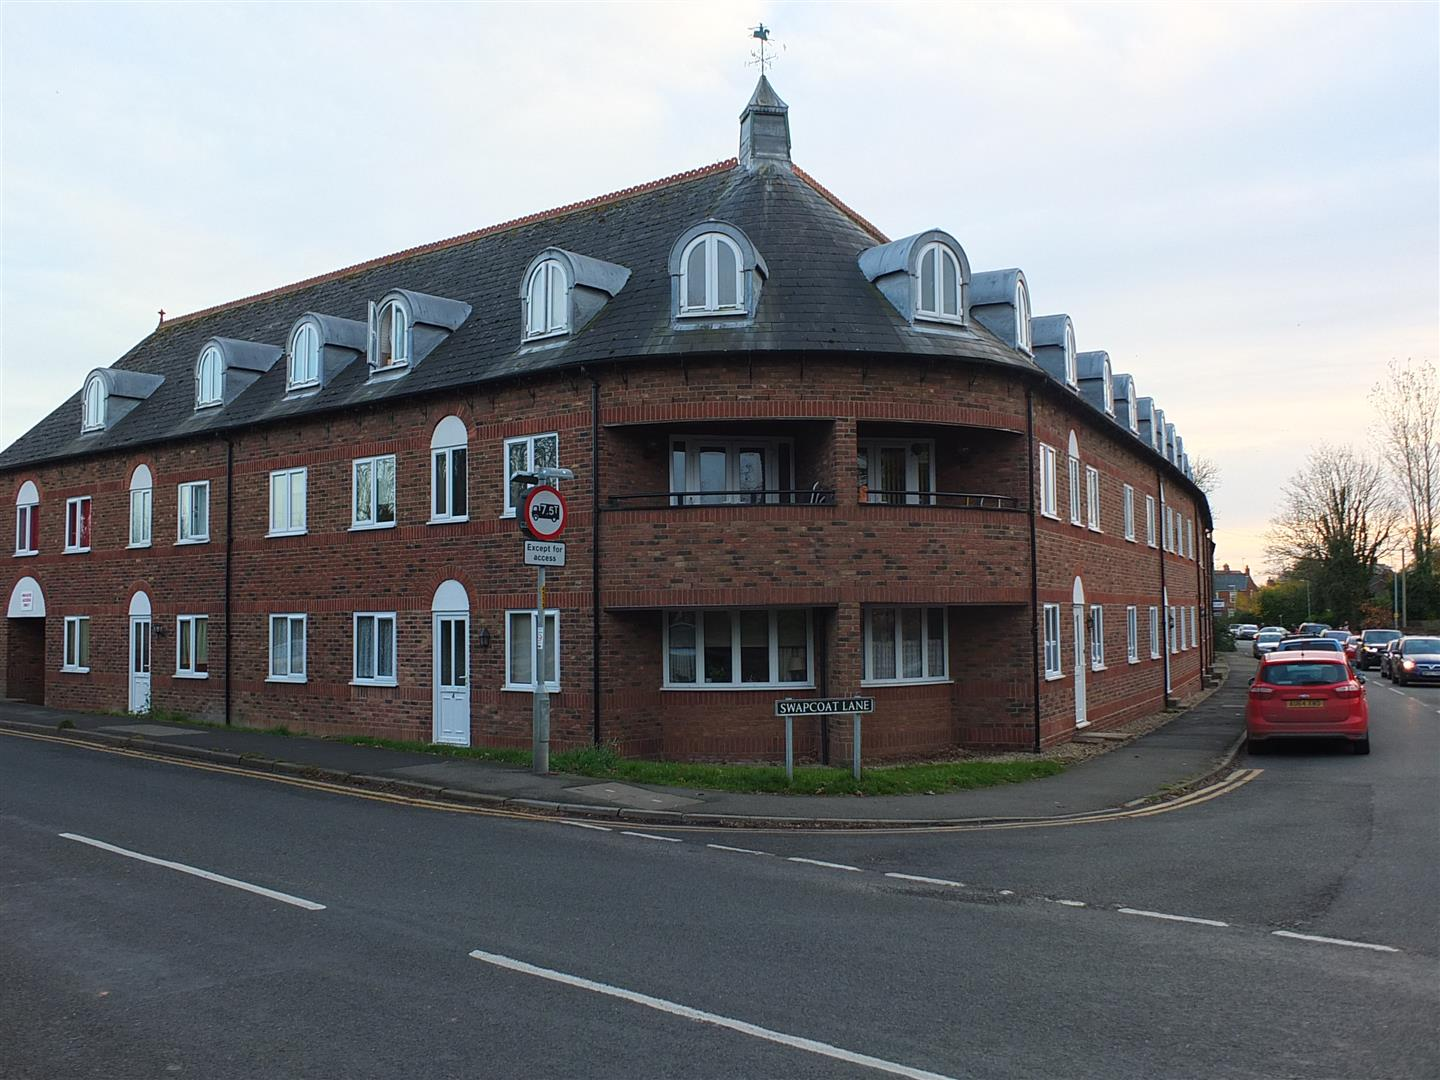 2 bed flat to rent in Long Sutton Spalding, PE12 9RL, PE12